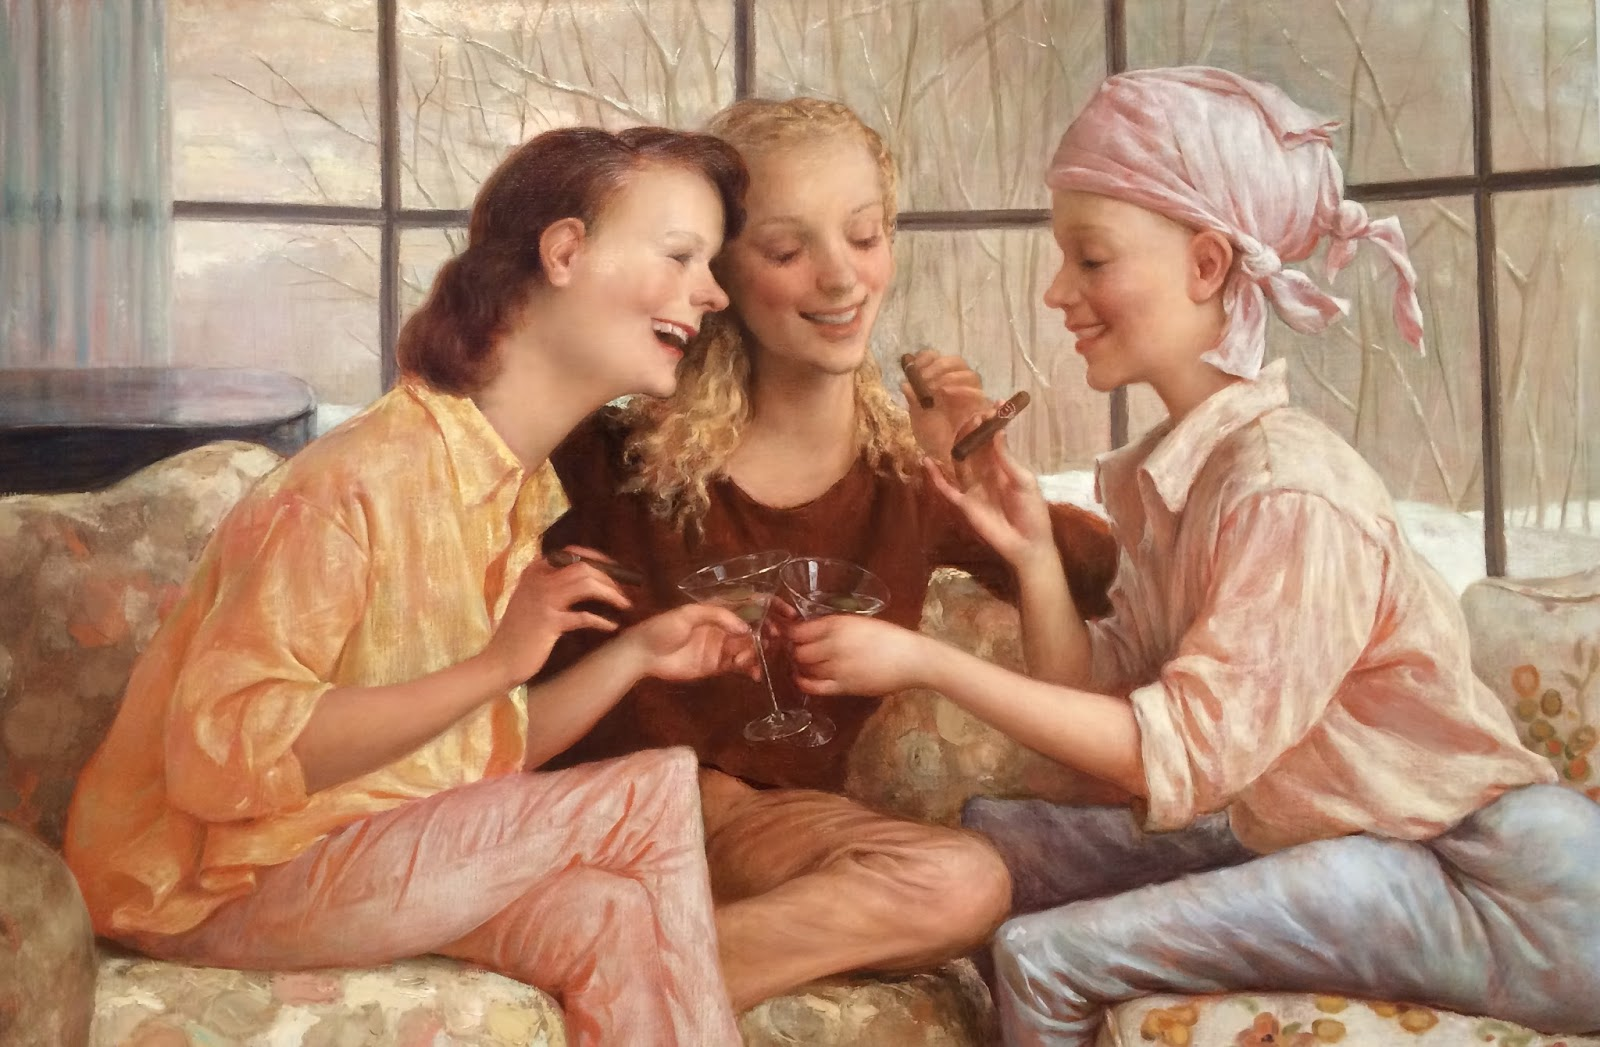 John Currin, 1962 - A Pop Surrealism Painter